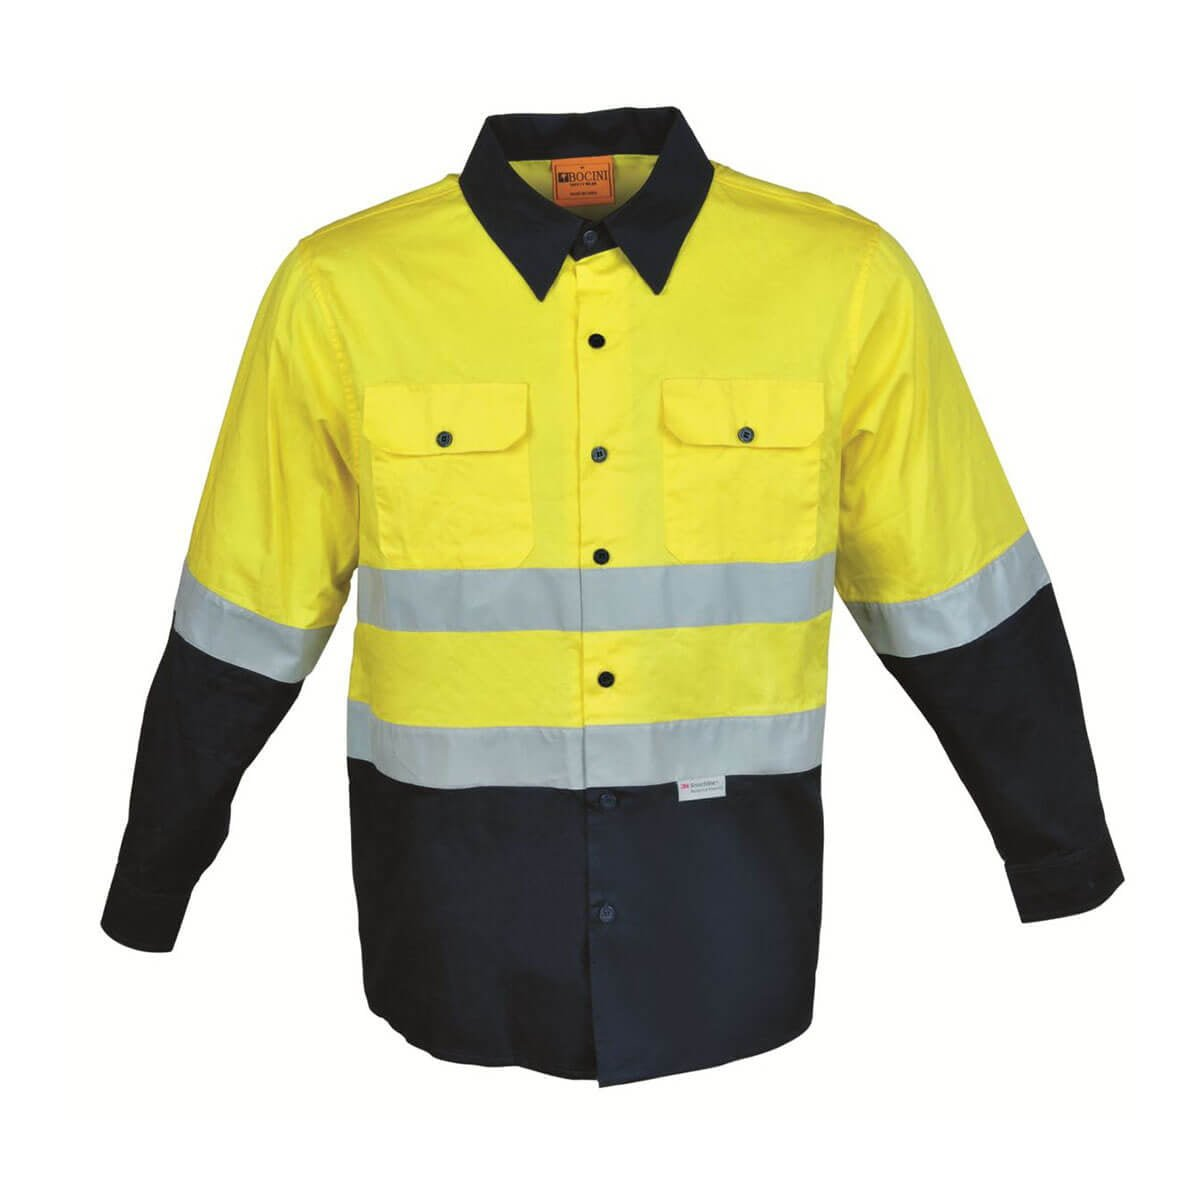 HI-VIS L/S COTTON DRILL SHIRT WITH TAPE-Lime / Navy